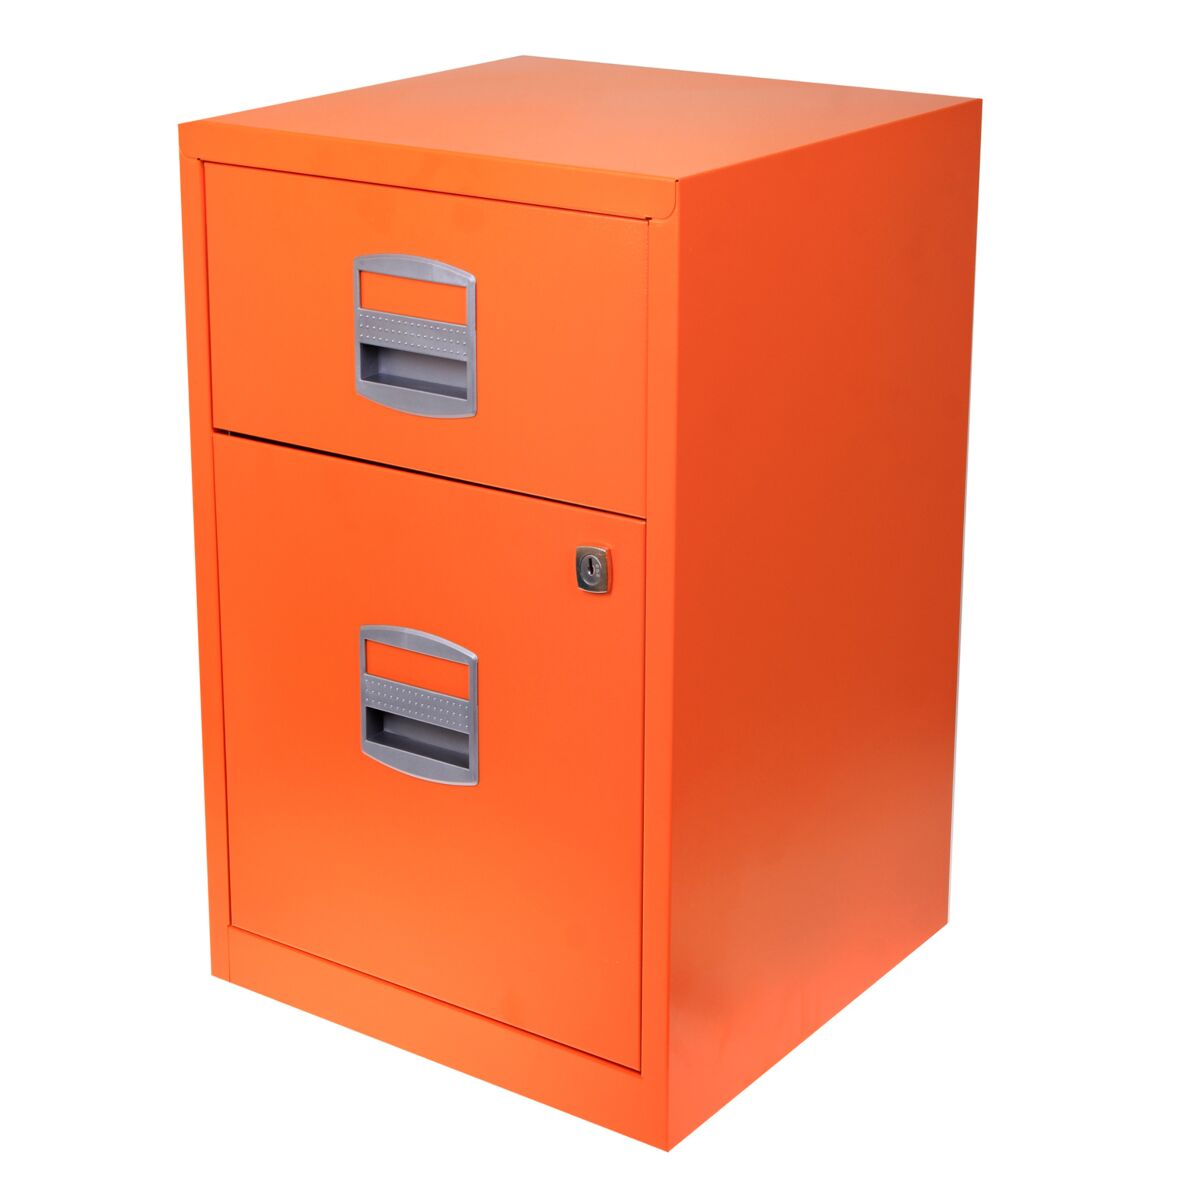 Bisley A4 2 Drawer Filing Cabinet on Wheels